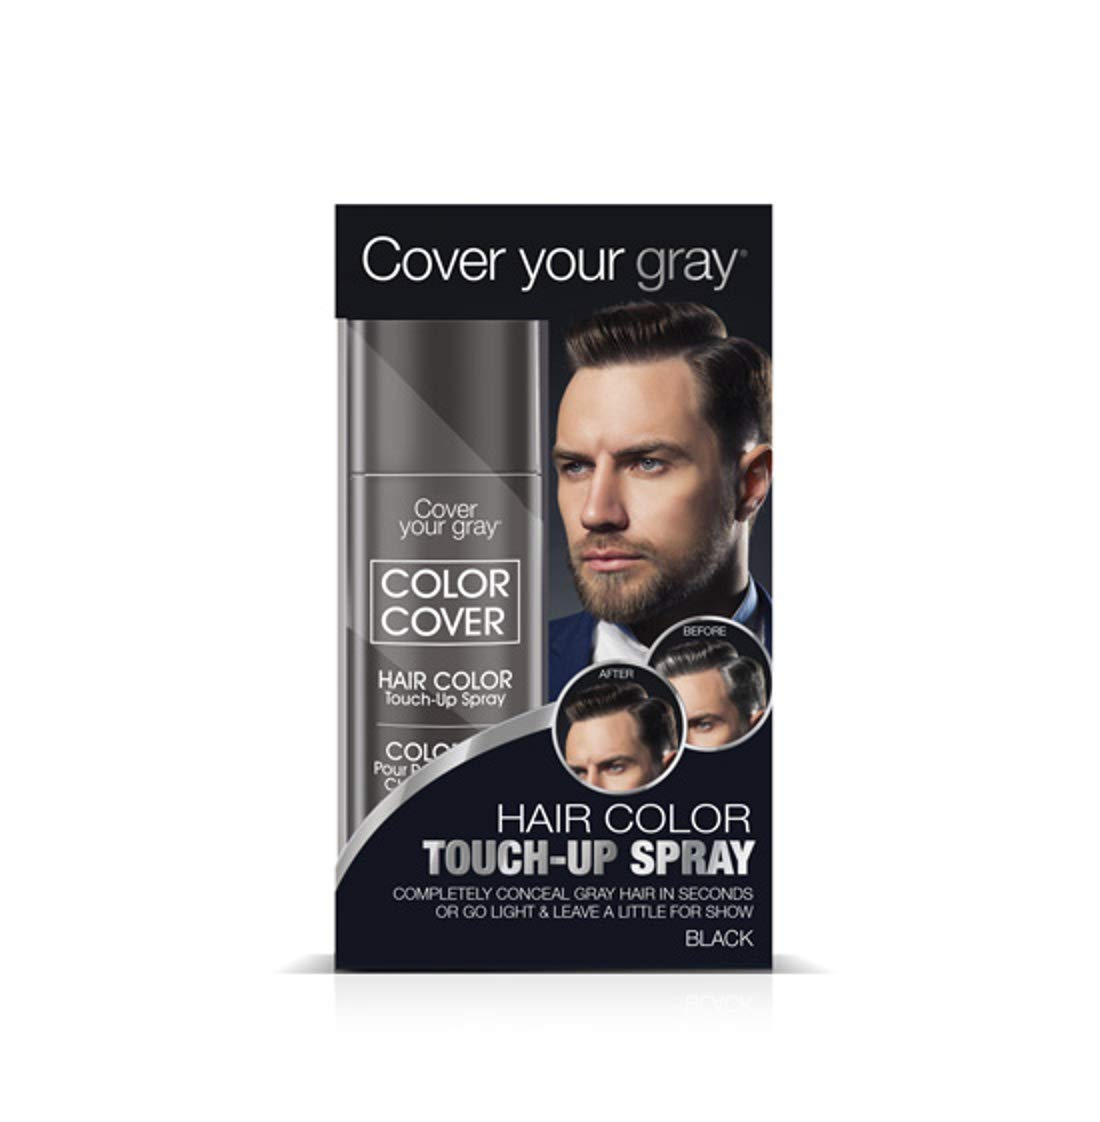 Cover Your Gray for Men Color Cover Hair Color Touchup Spray - Black